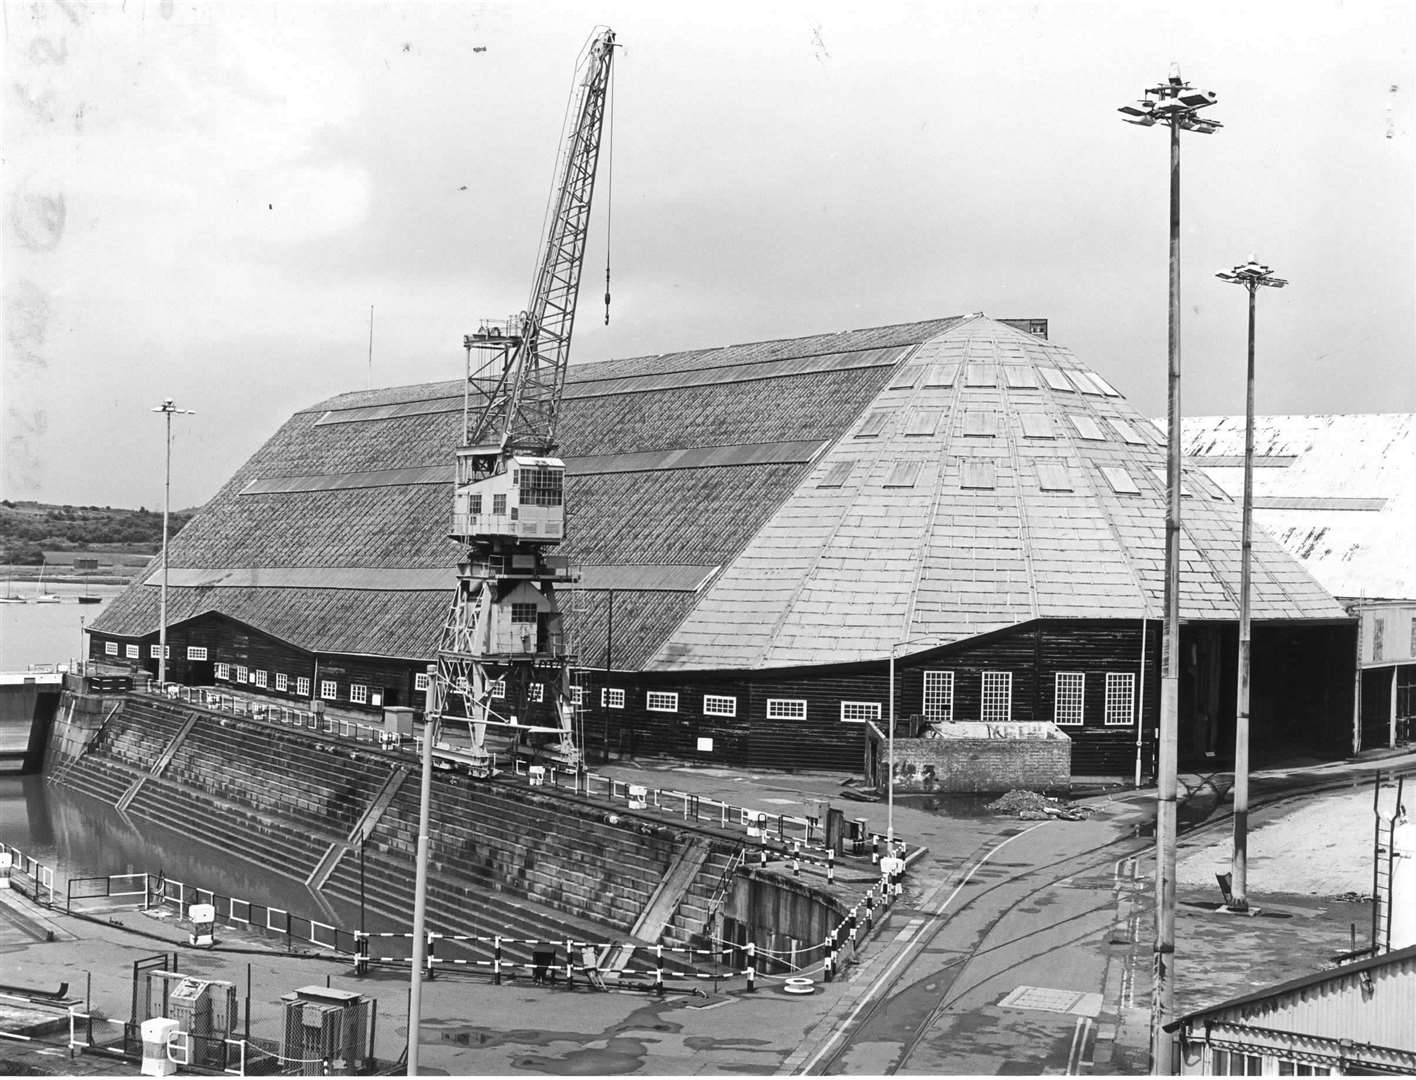 Number 3 slip at Chatham Historic Dockyard pictured in 1985. The magnificent timber framed building was completed in 1838 and is among 45 scheduled ancient monuments at the dockyard